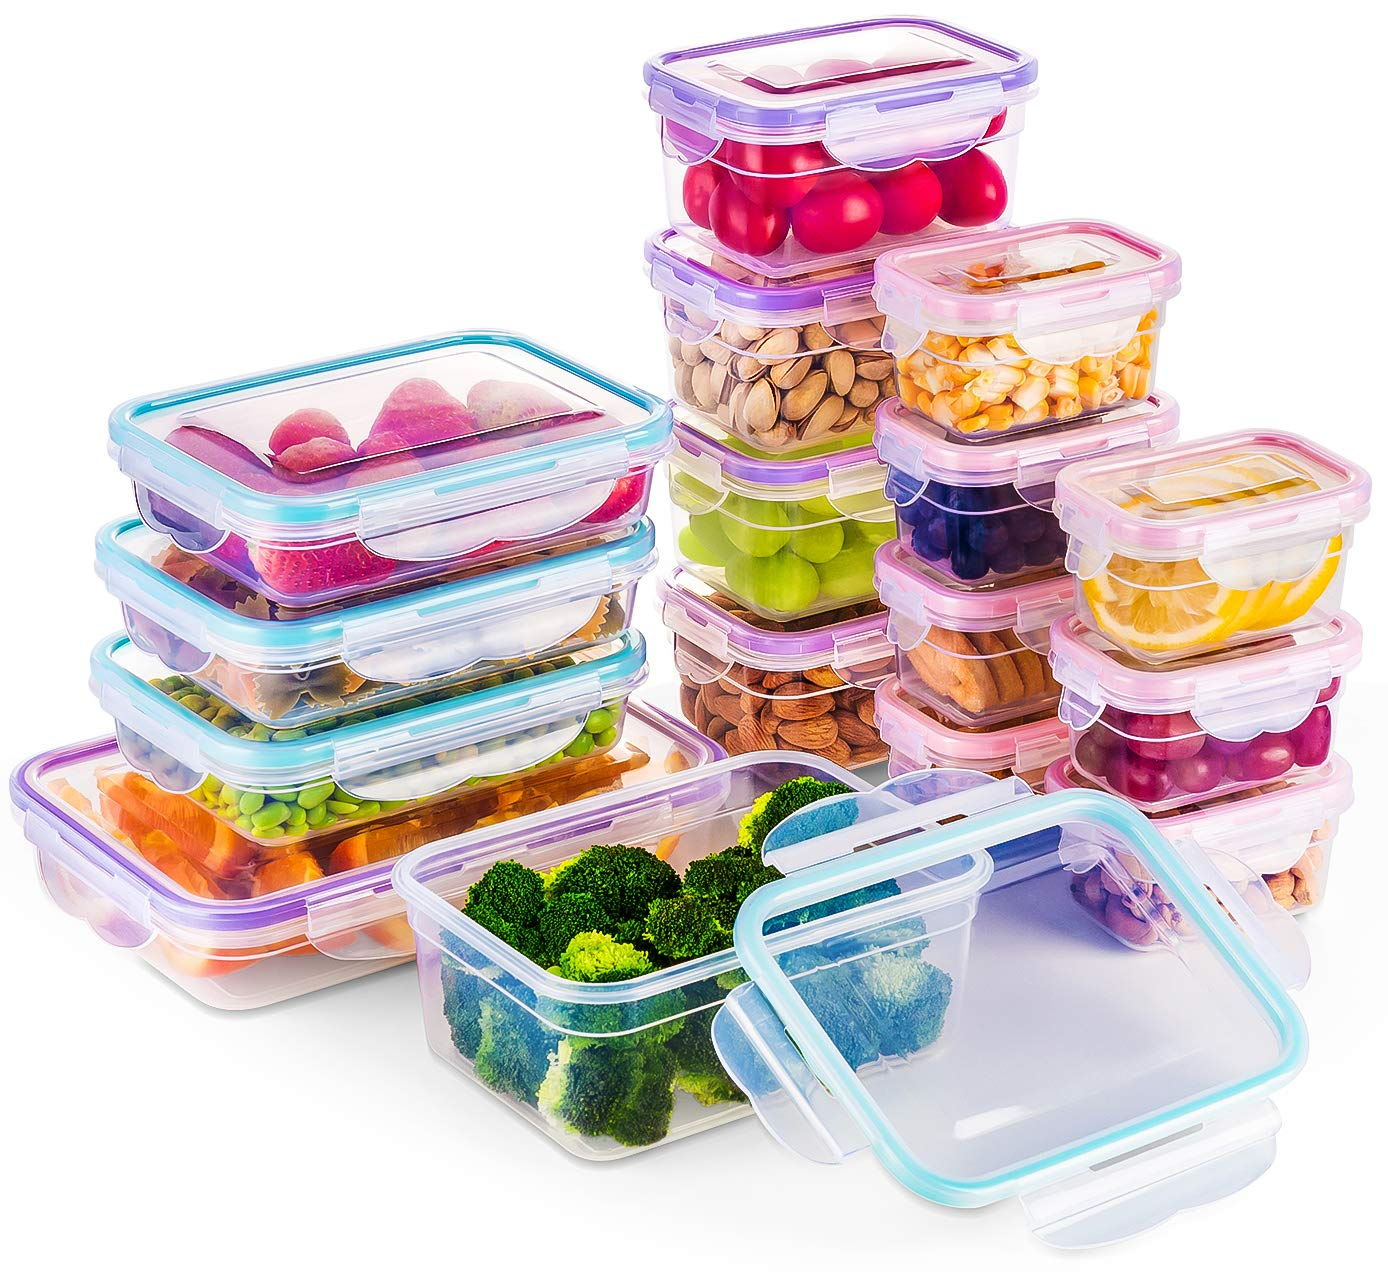 [16 Pack] Food Storage Containers with Lids, Plastic Food Containers with Lids, Airtight Storage Container Sets for Healthy Diet, Vegetables, Snack & Fruit (Small&Large Size), BPA Free & Leakproof by Bayco (Image #1)